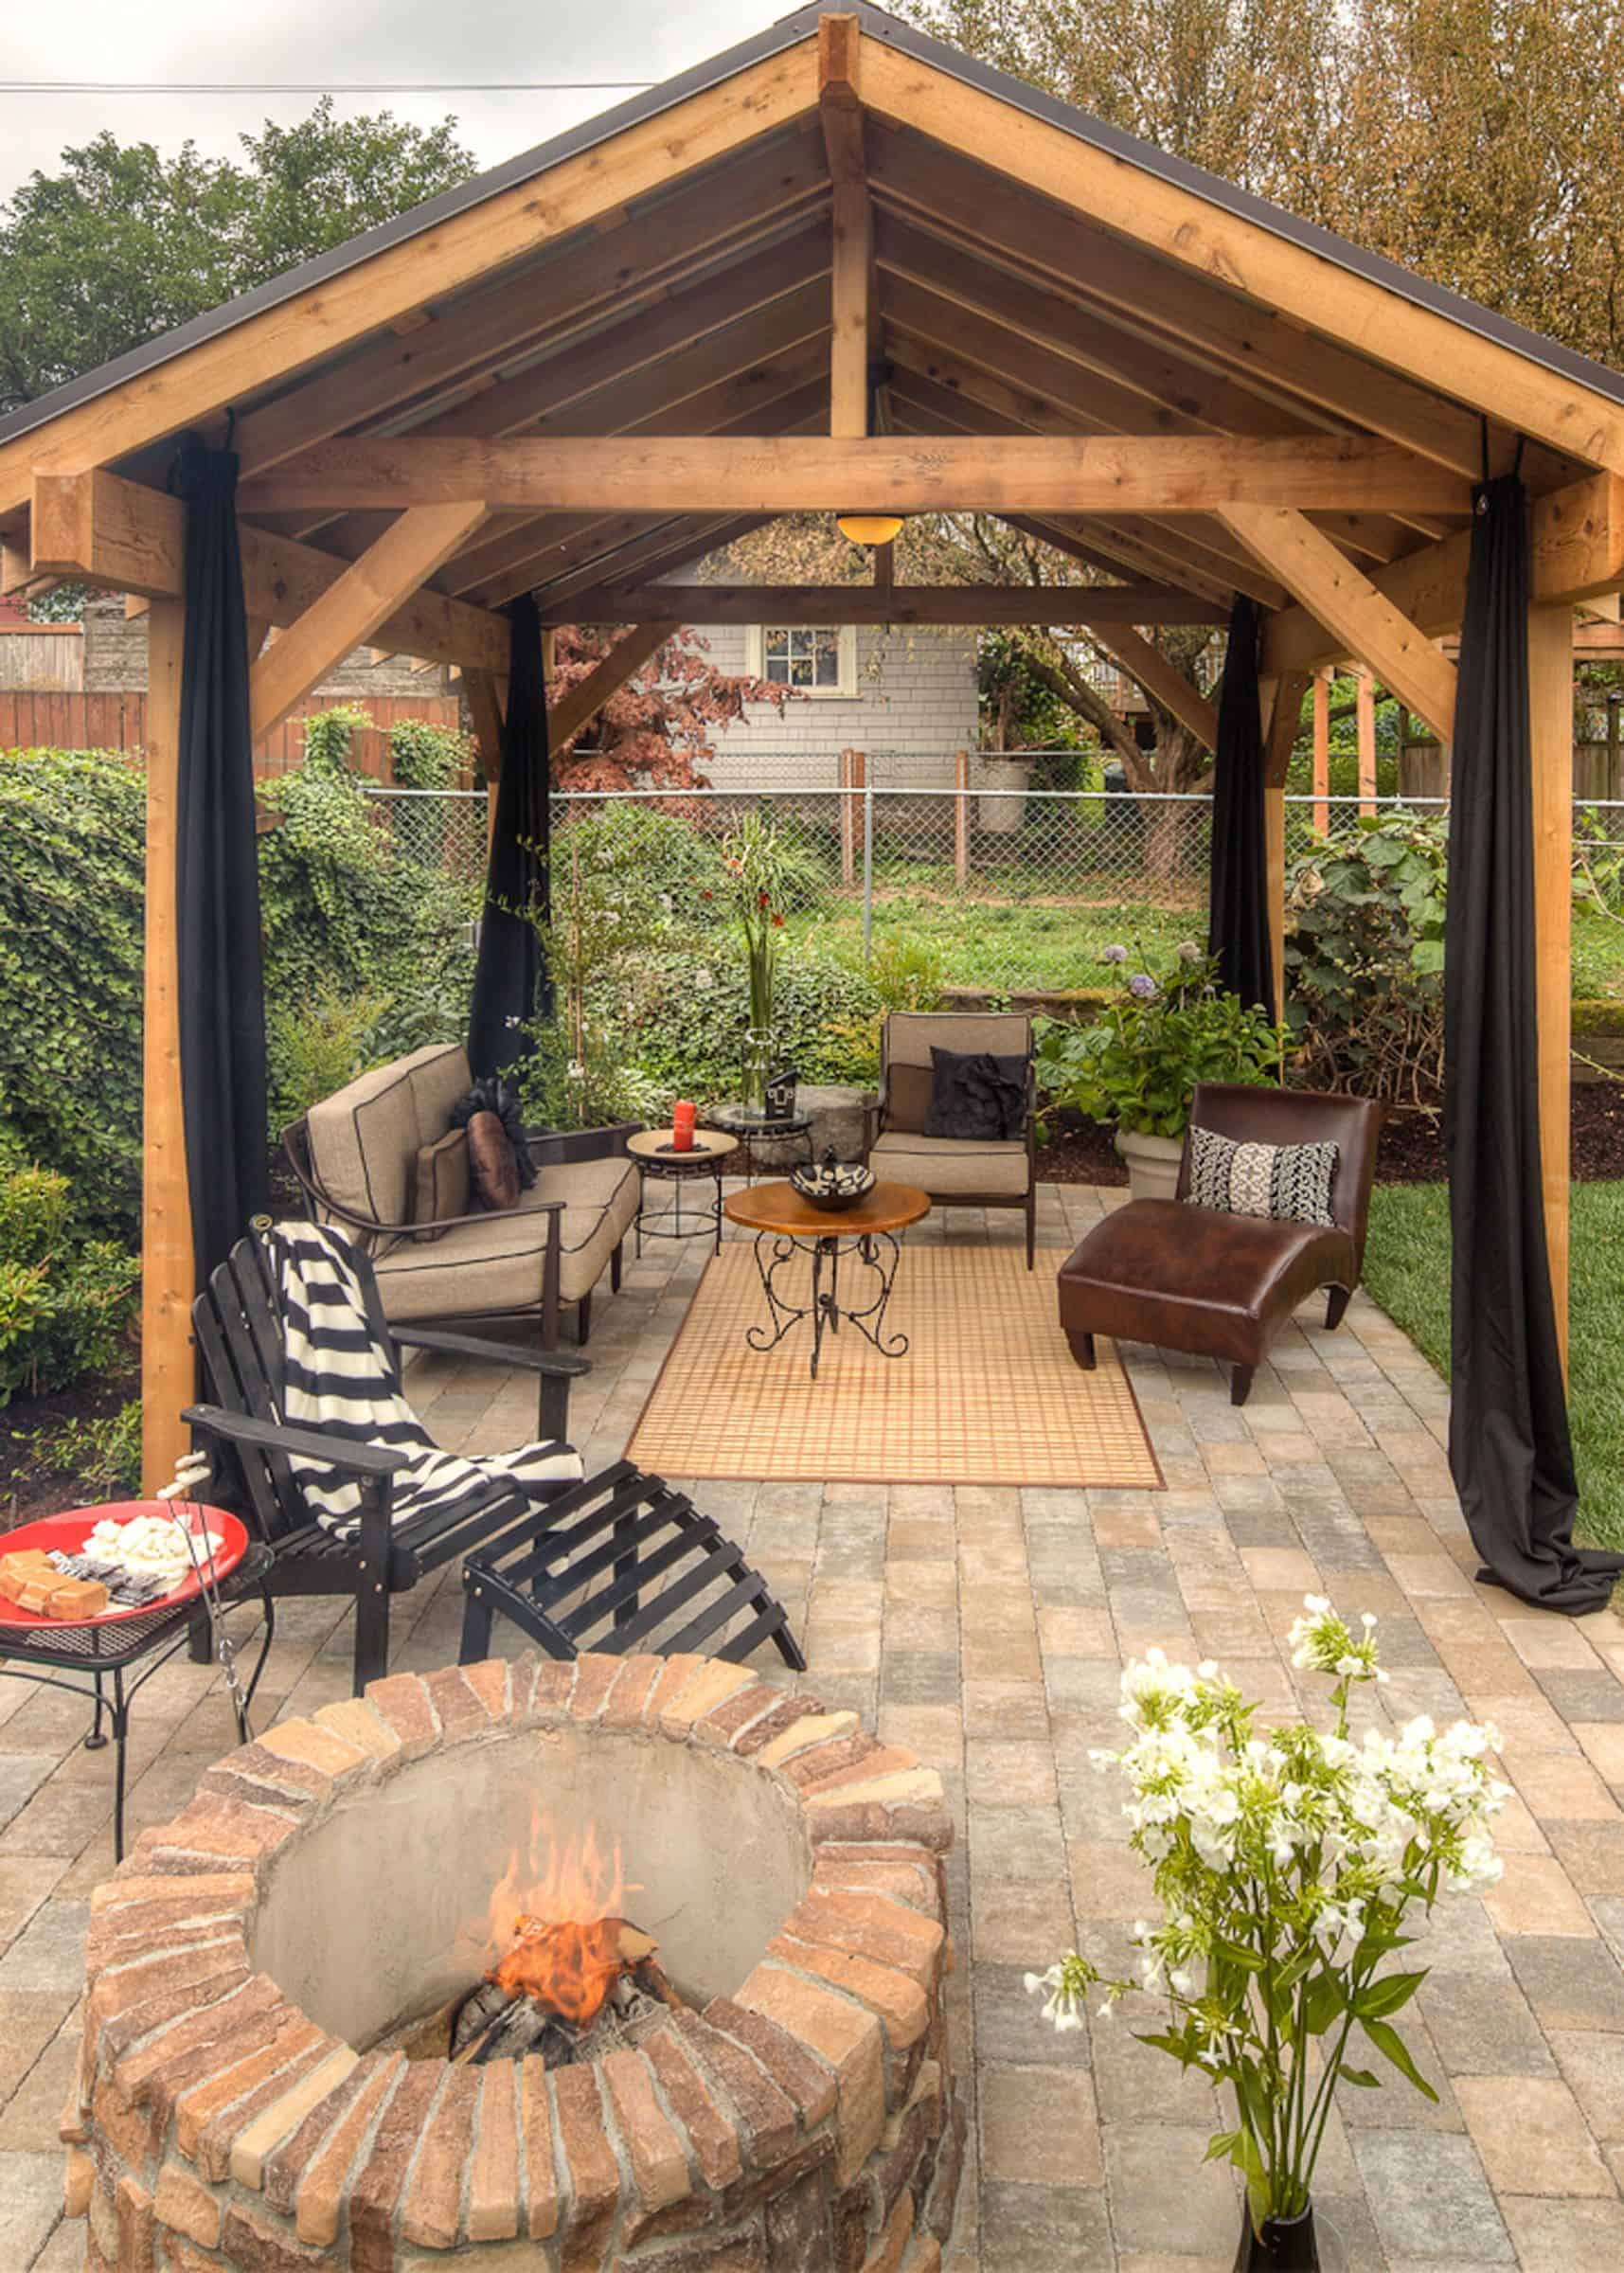 Curb appeal: Consider installing a gazebo to make an outdoor room